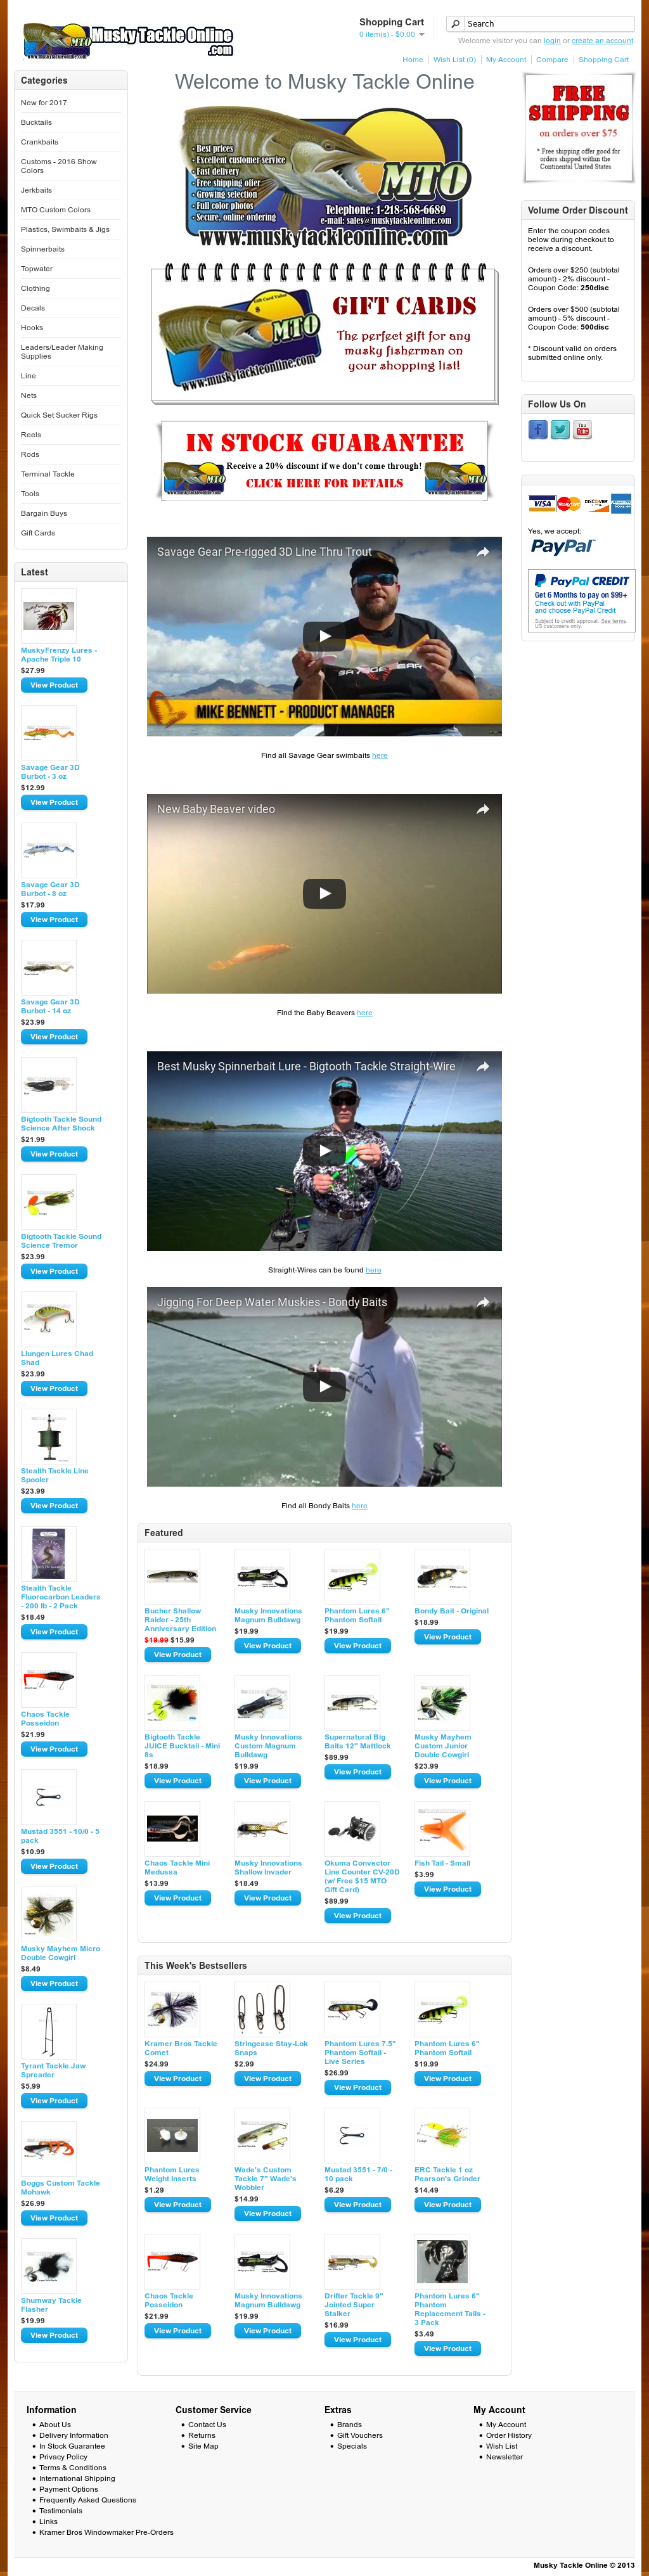 Musky Tackle Online Competitors, Revenue and Employees - Owler